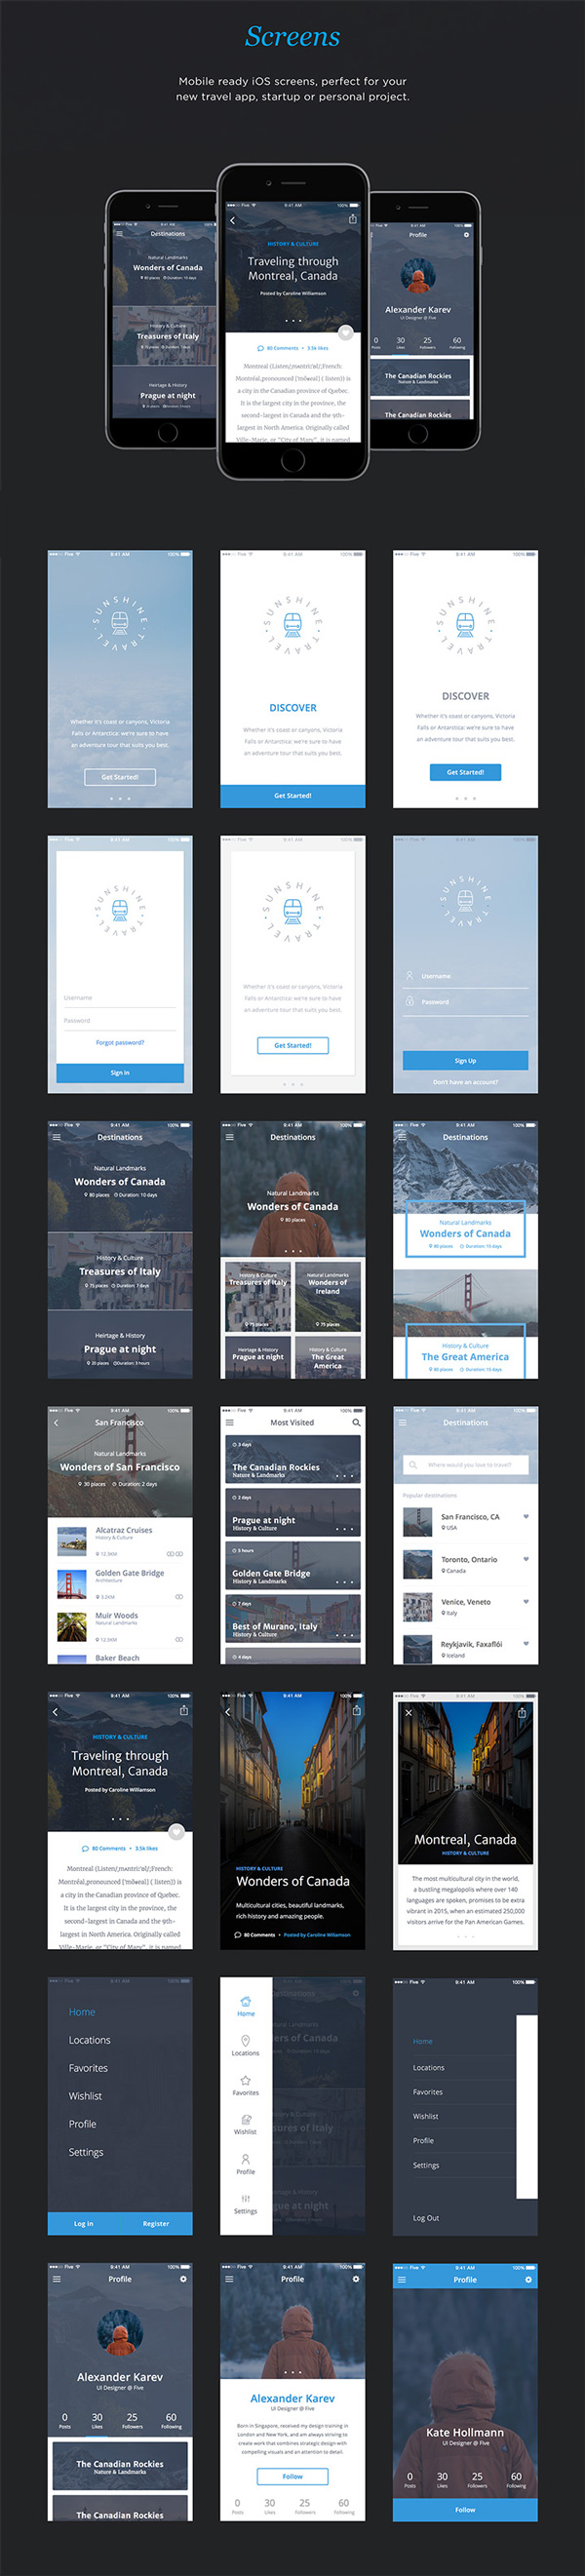 travel-ui-kit-psd-detailed-image